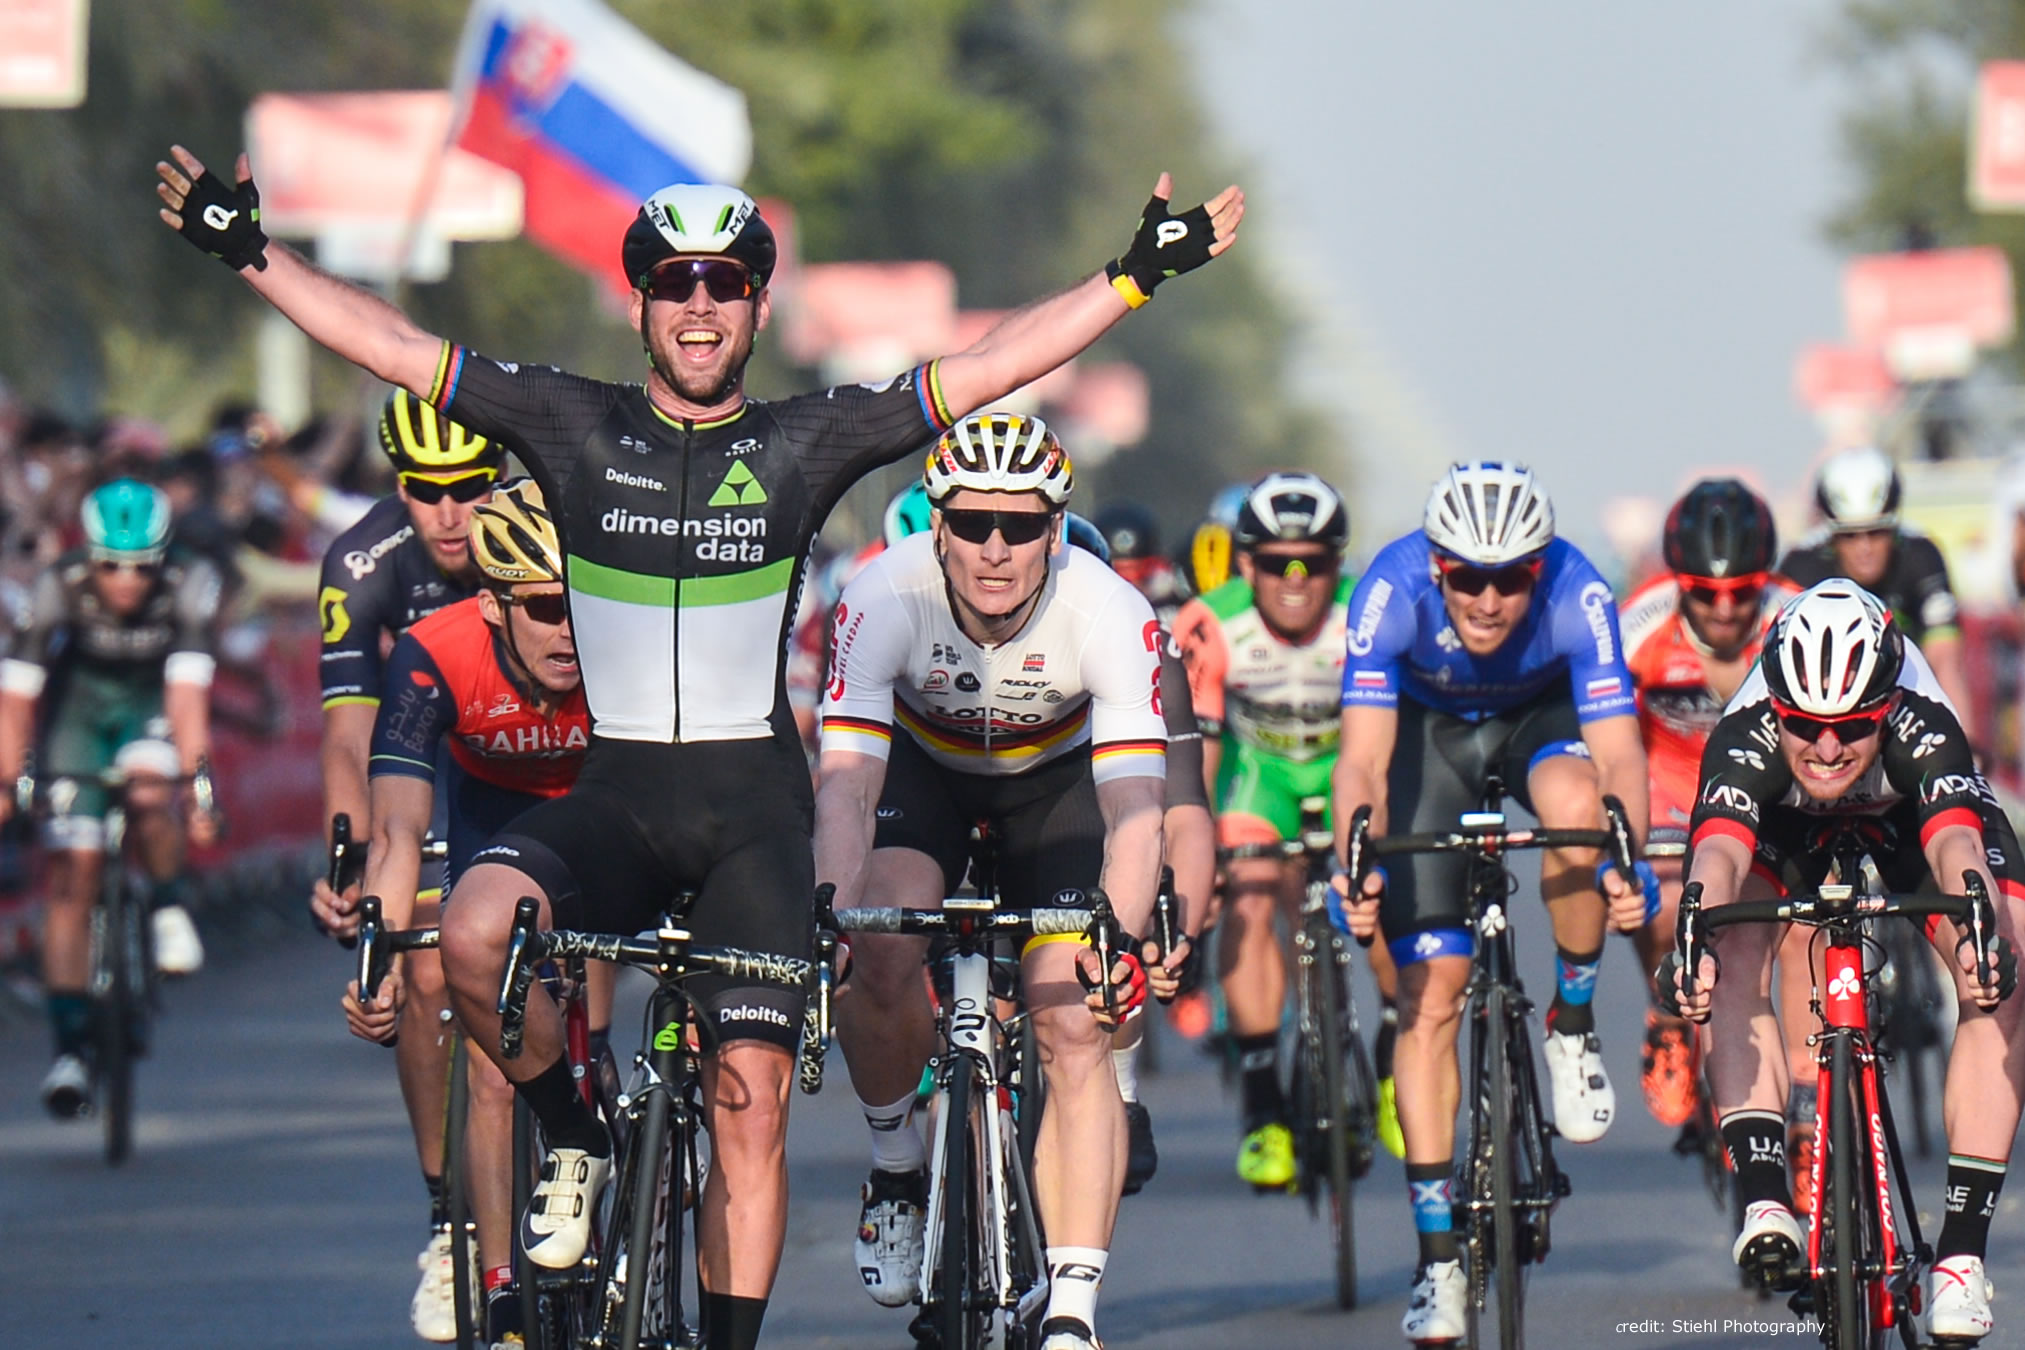 Team Dimension Data for Qhubeqa image by Stiehl Photography